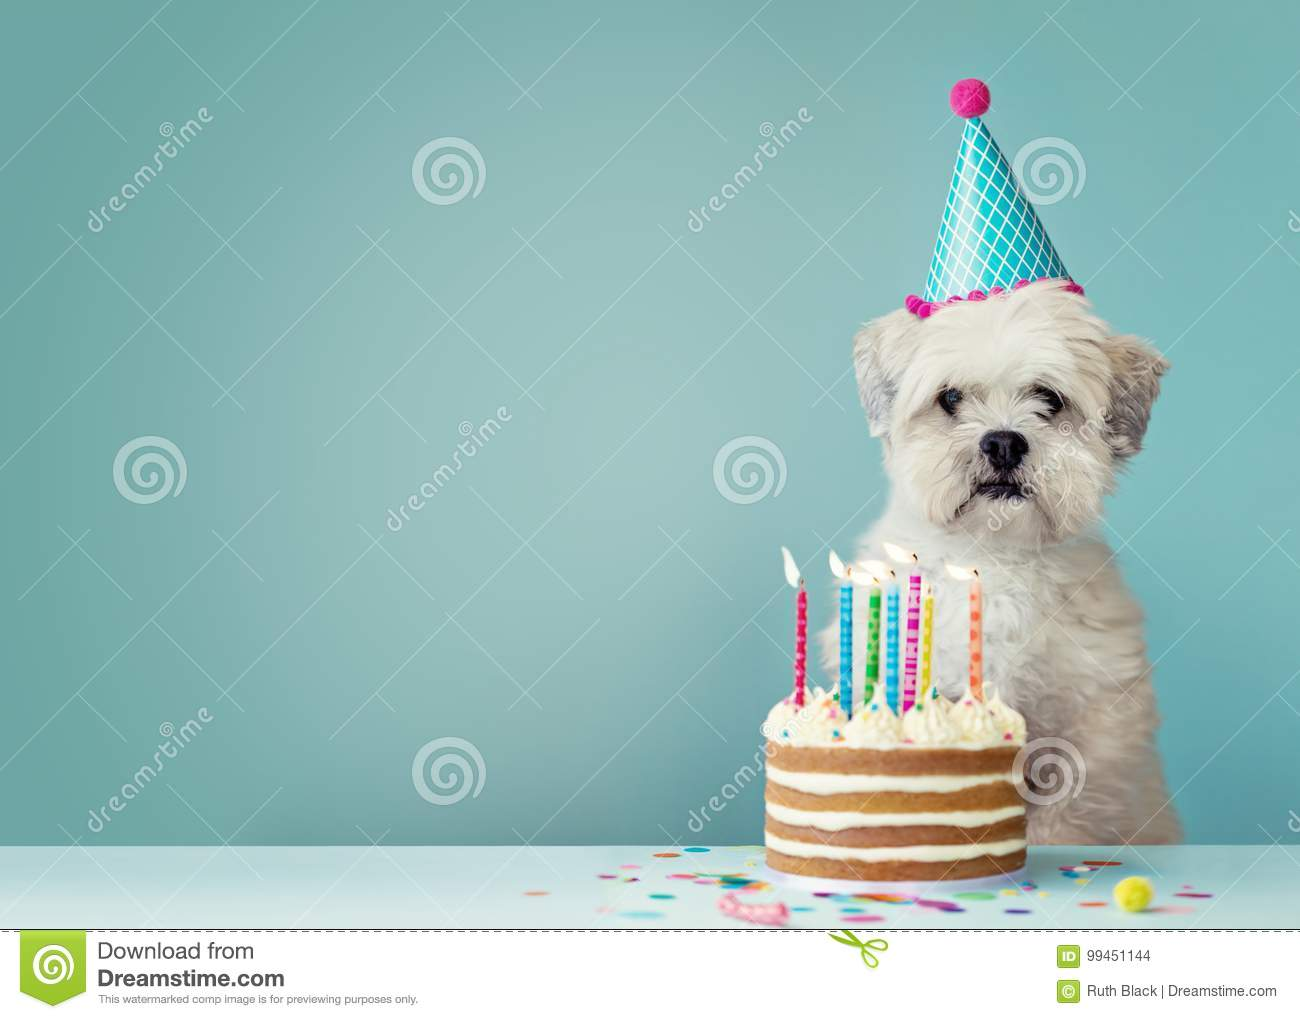 Dog Birthday Stock Photos Download 4 823 Images